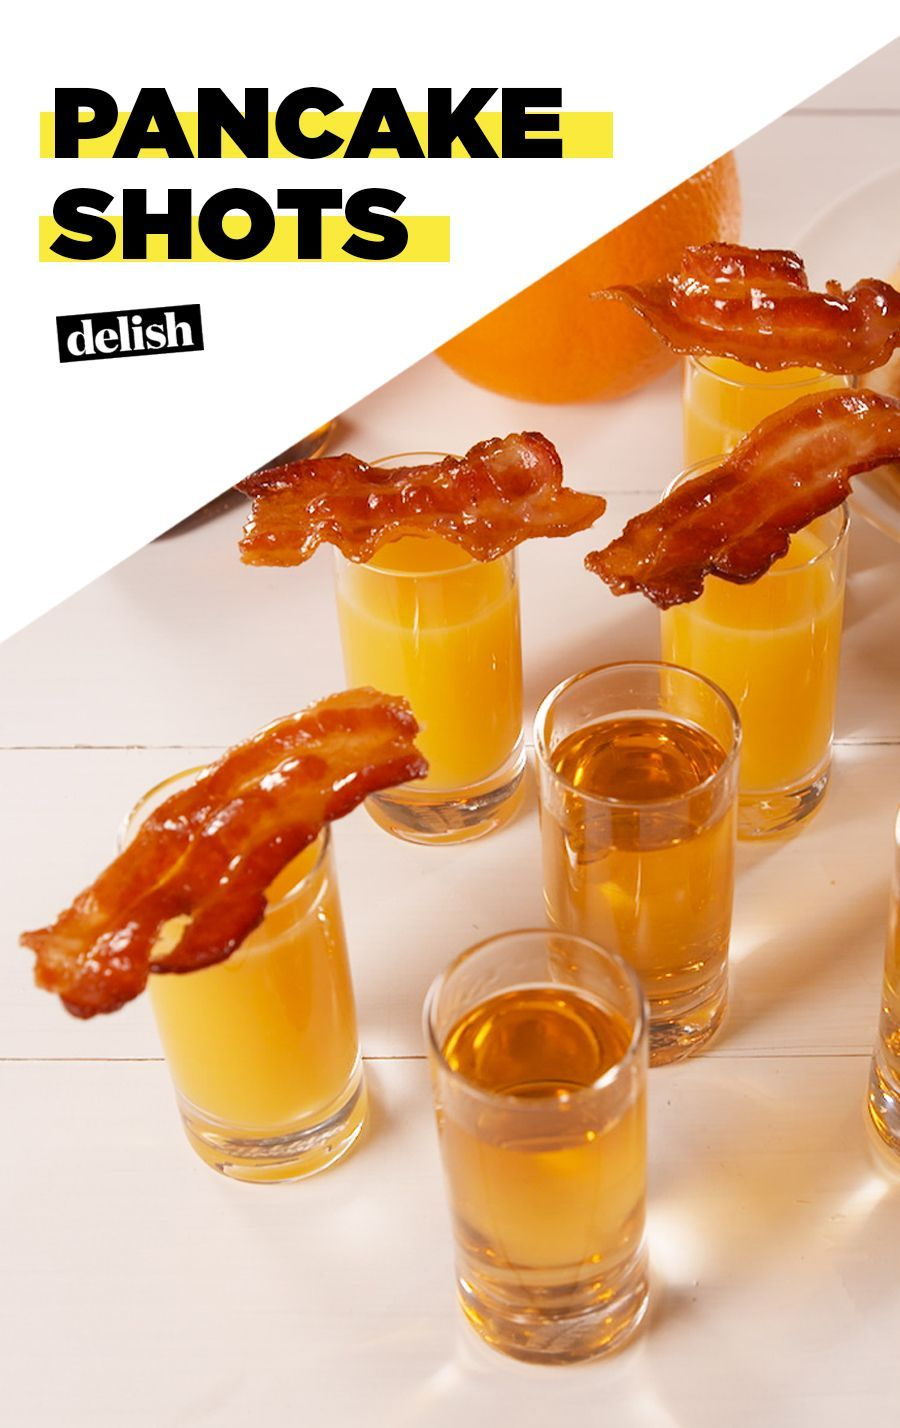 Pancake Shots are the best way to get lit at brunch Get the recipe at